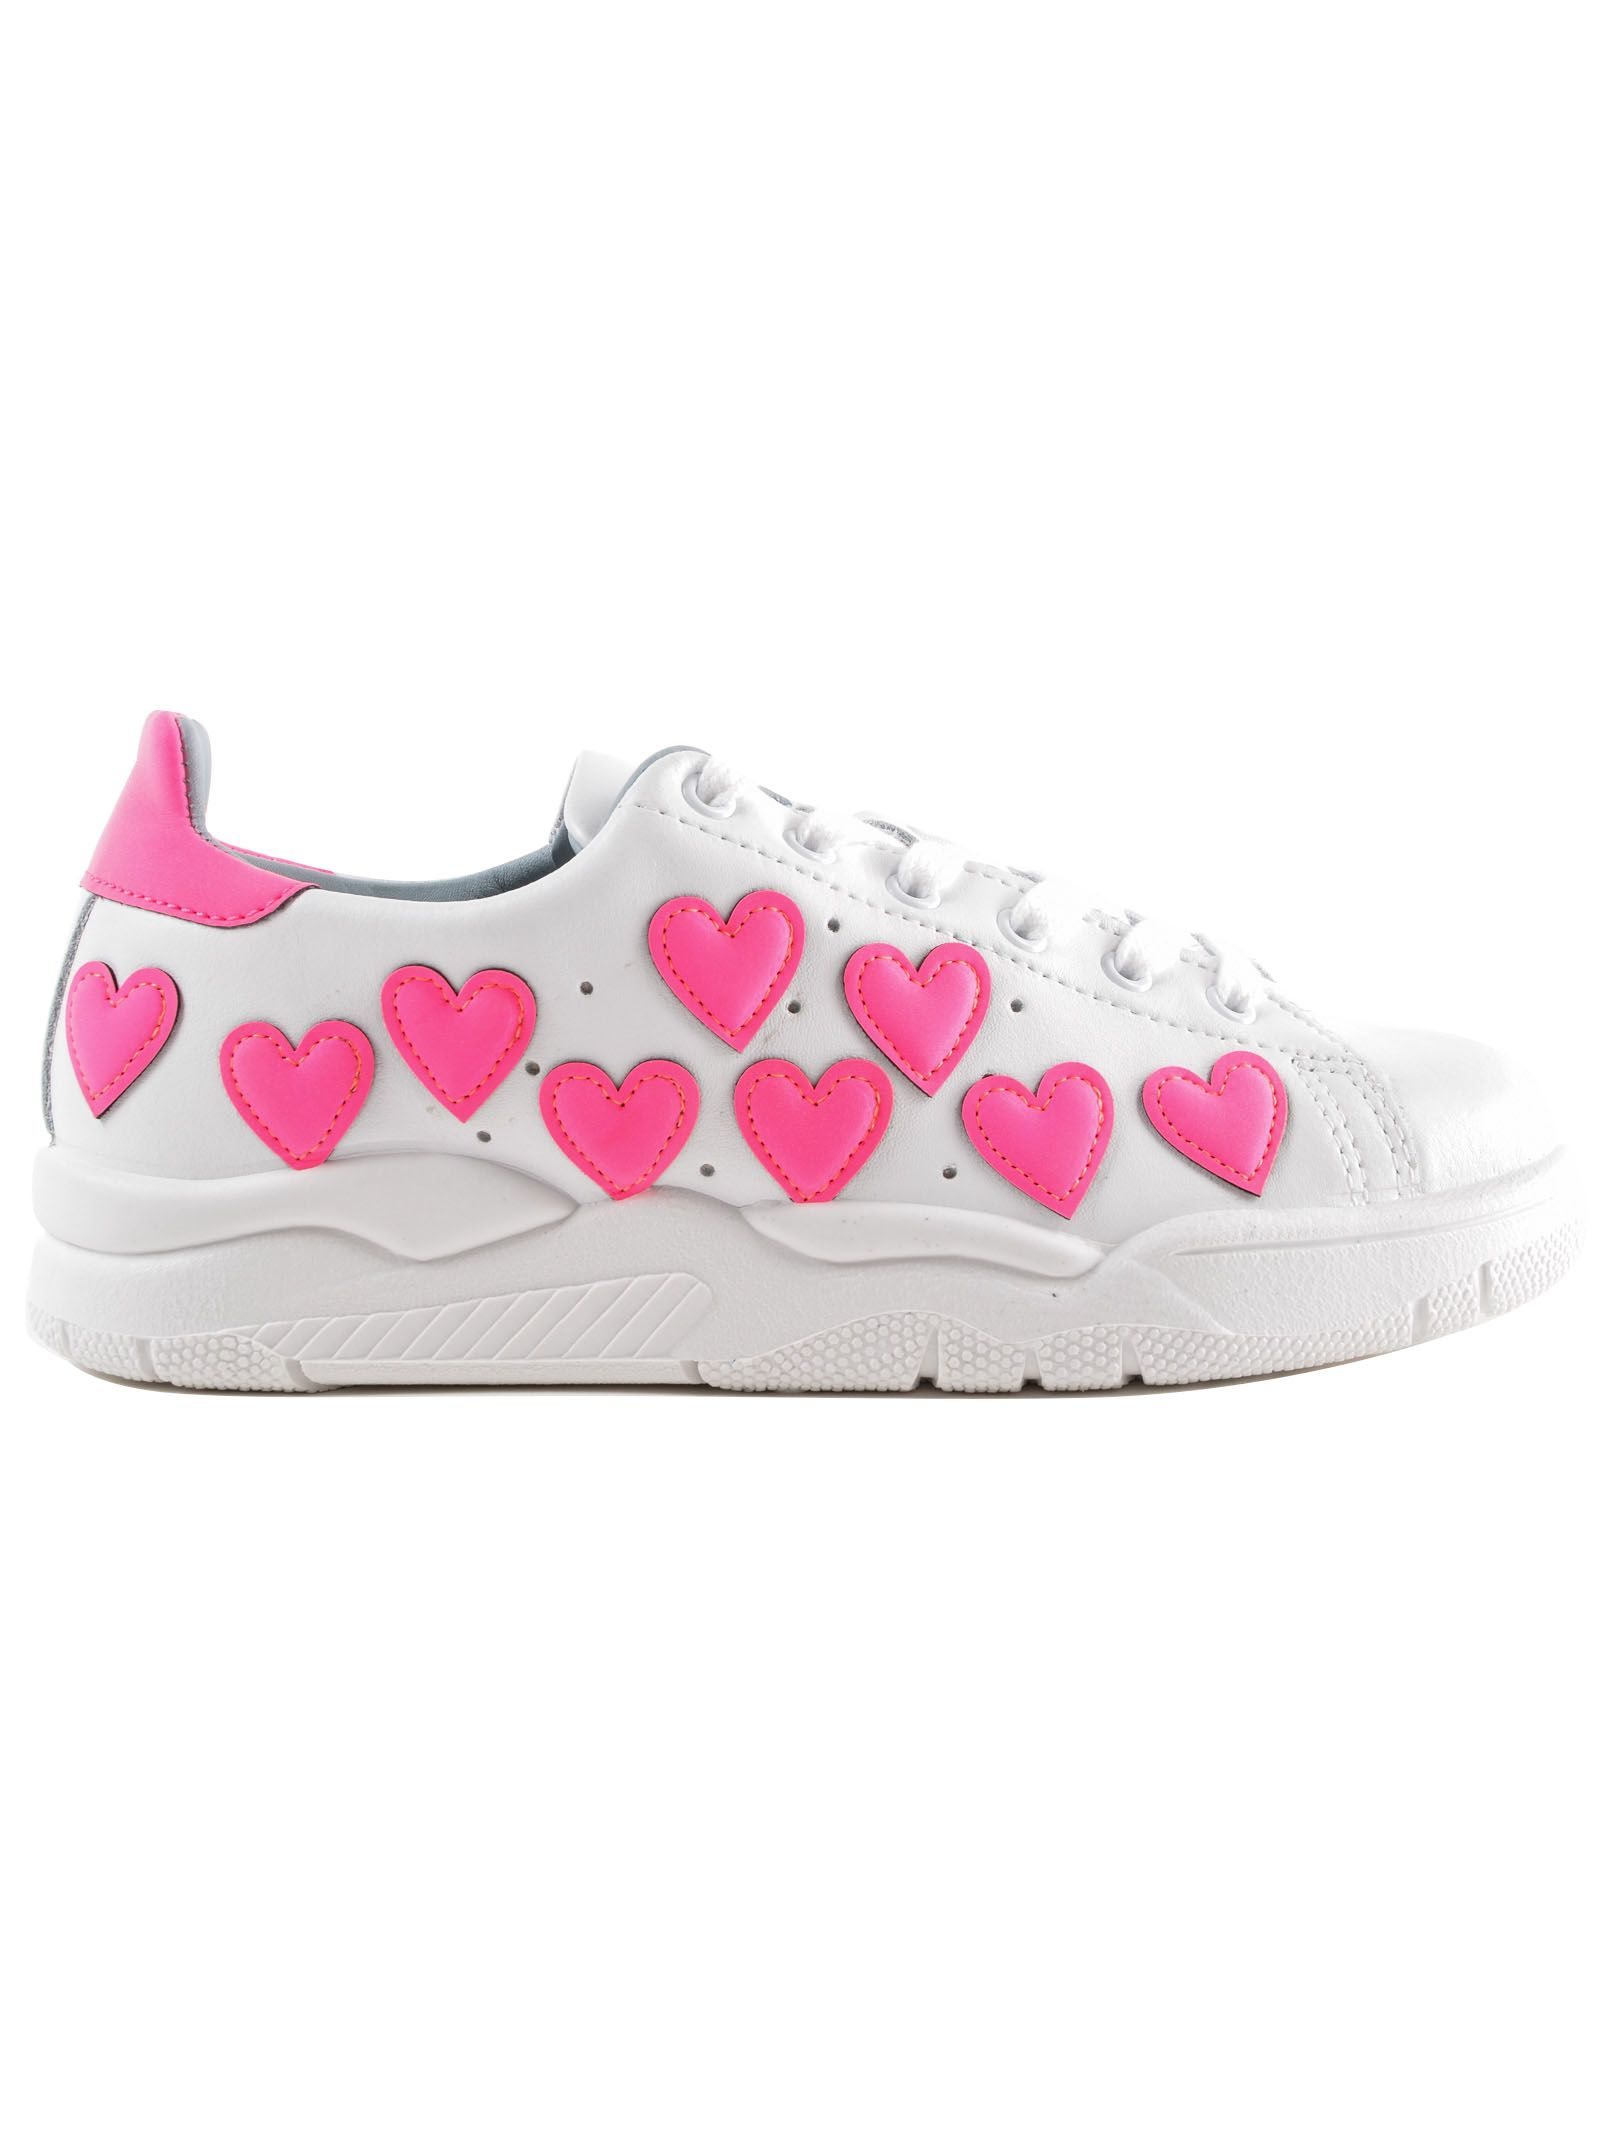 Discounts For Sale Cheap Sale Best Store To Get Chiara Ferragni Embellished Heart Roger Sneakers Best Selling Classic Sale Online Discount Deals veM6x0